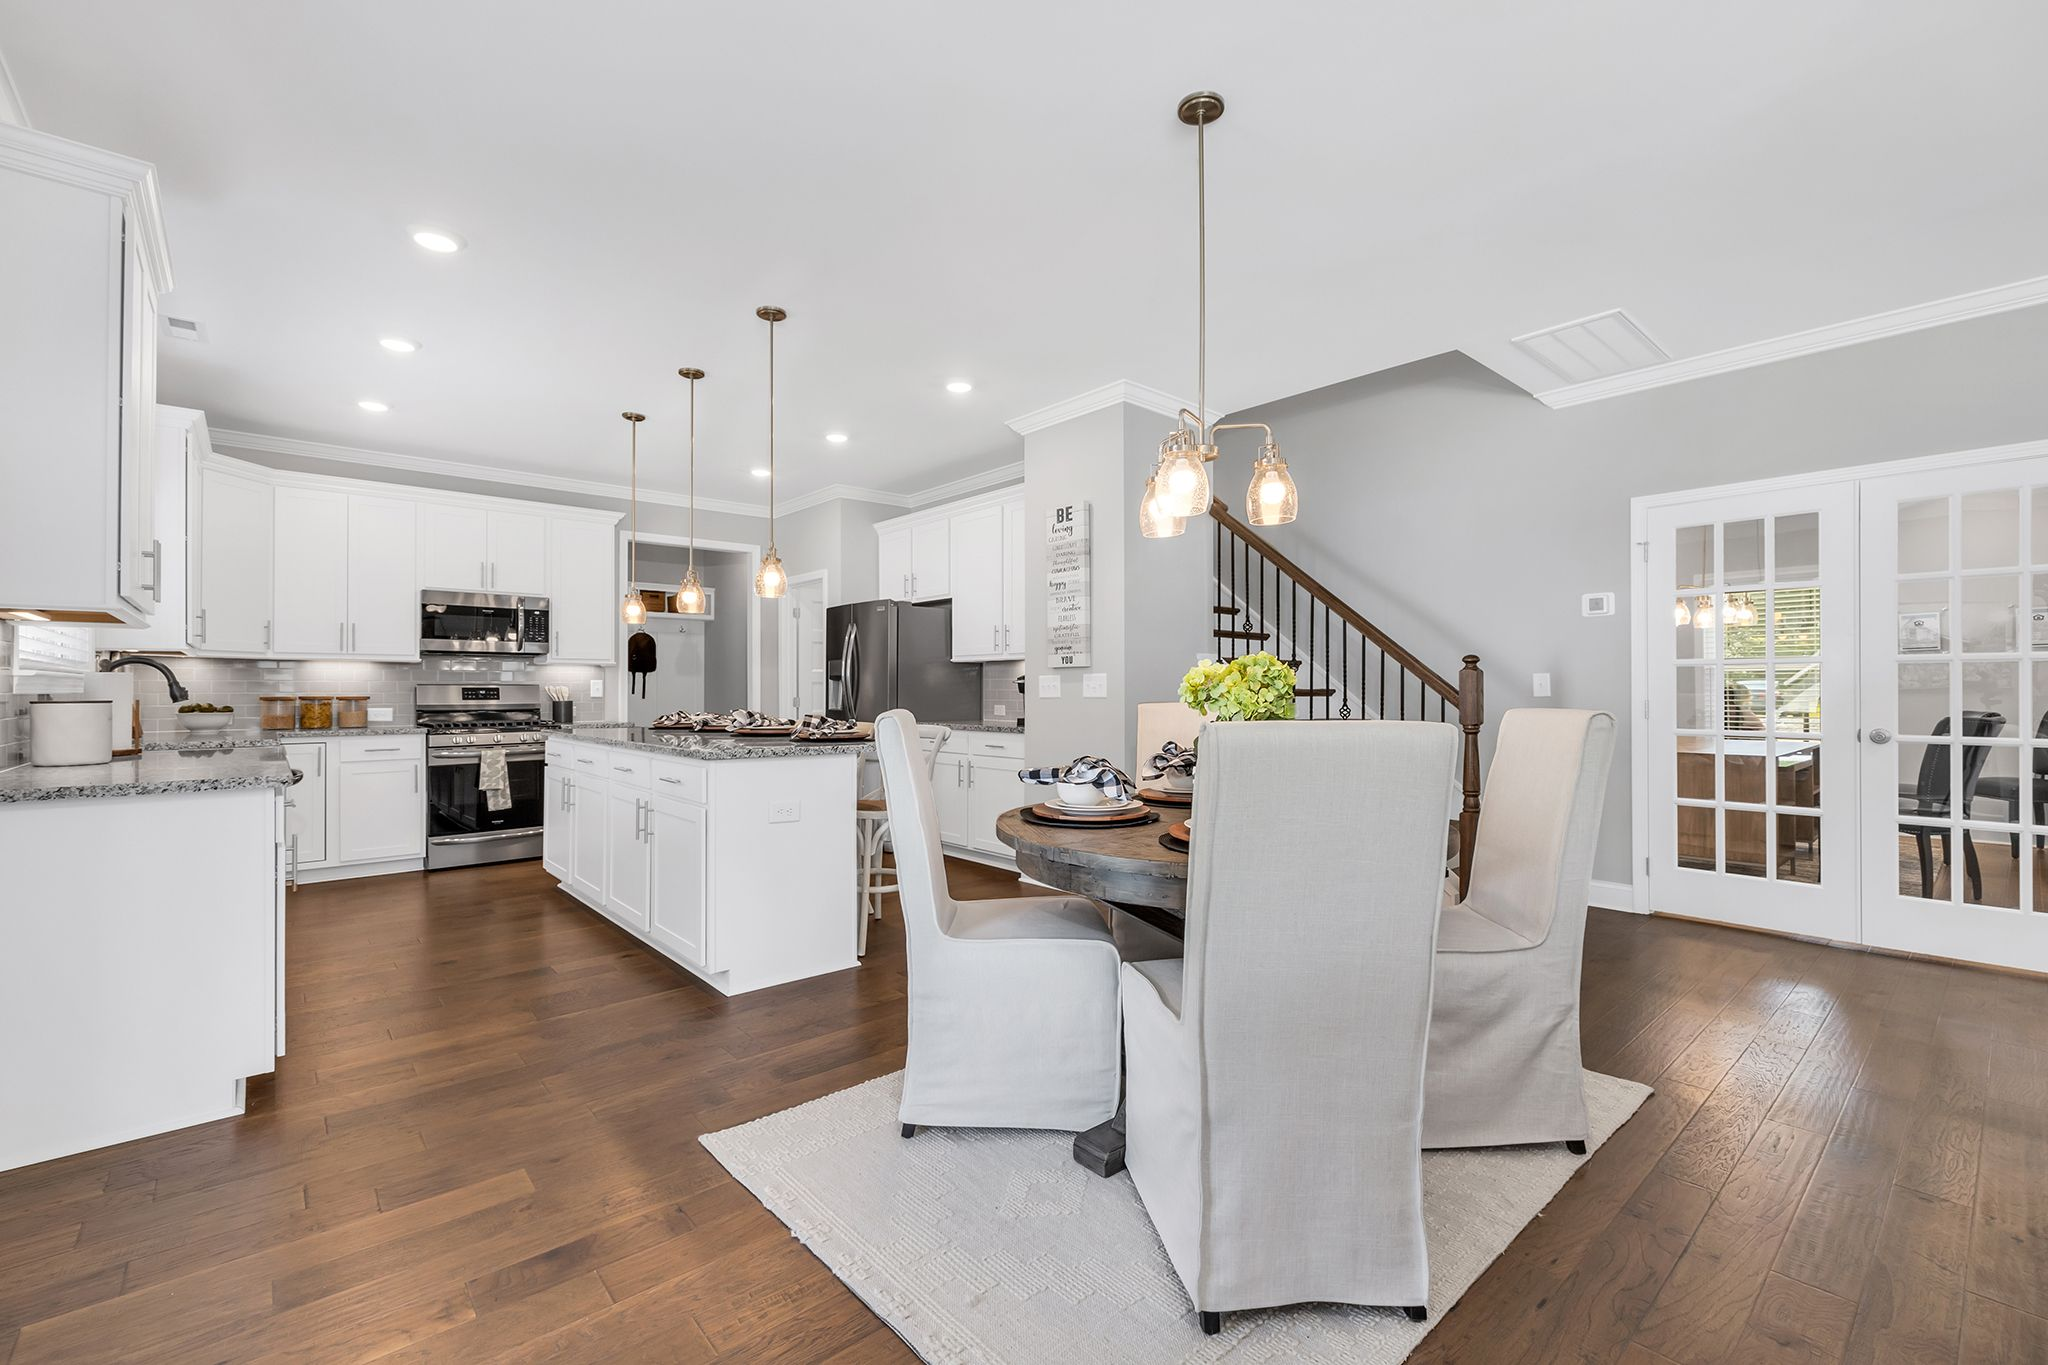 Kitchen featured in The Alexandria By Goodall Homes in Knoxville, TN